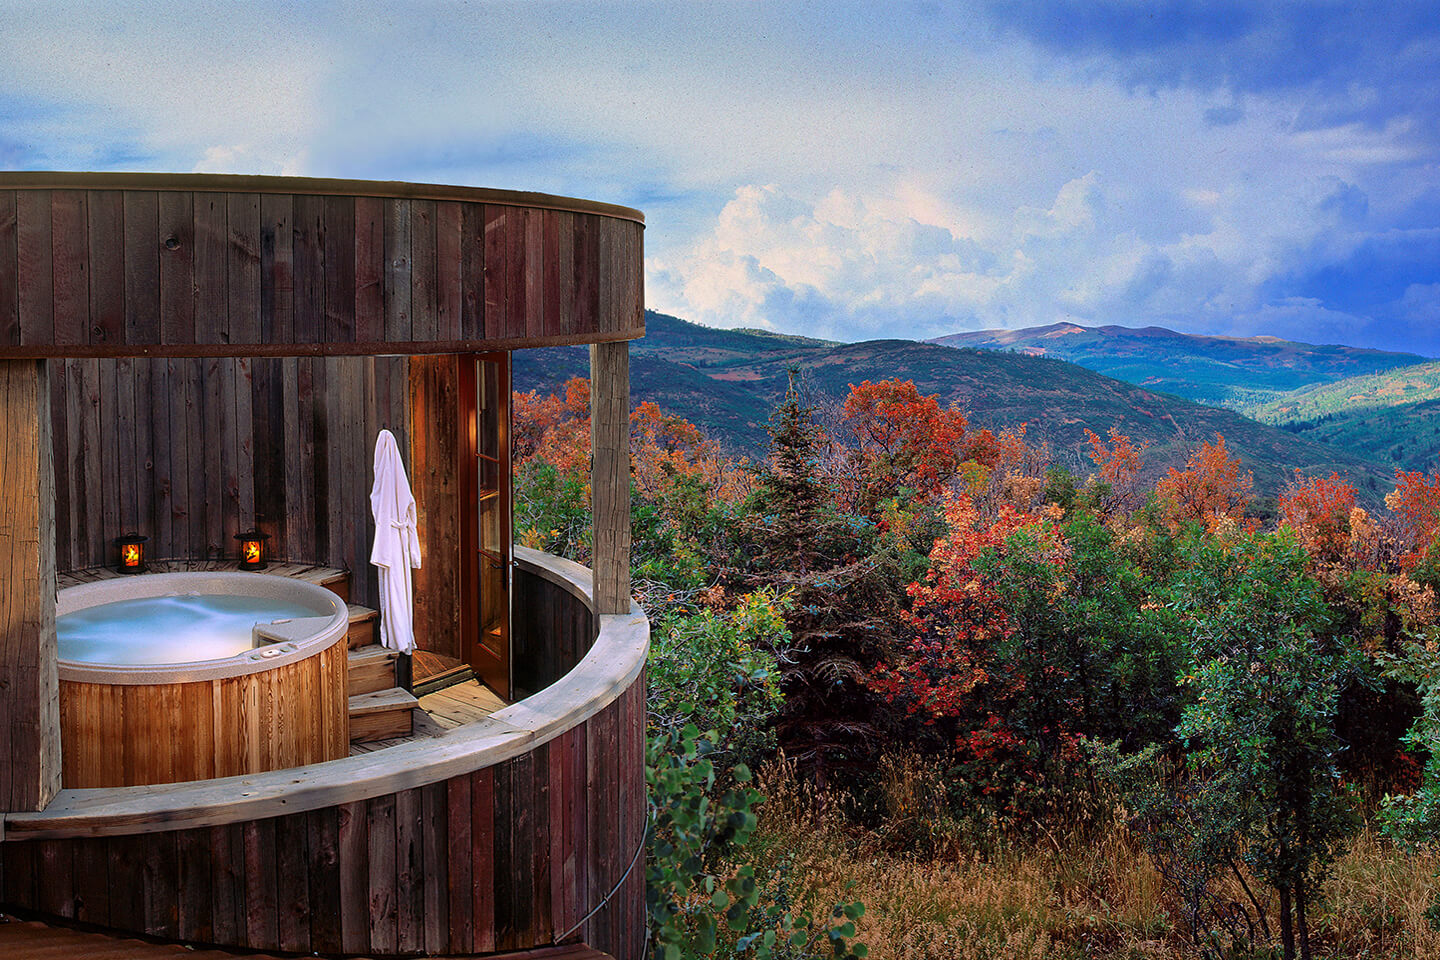 Jacuzzi with a view toward distant hills